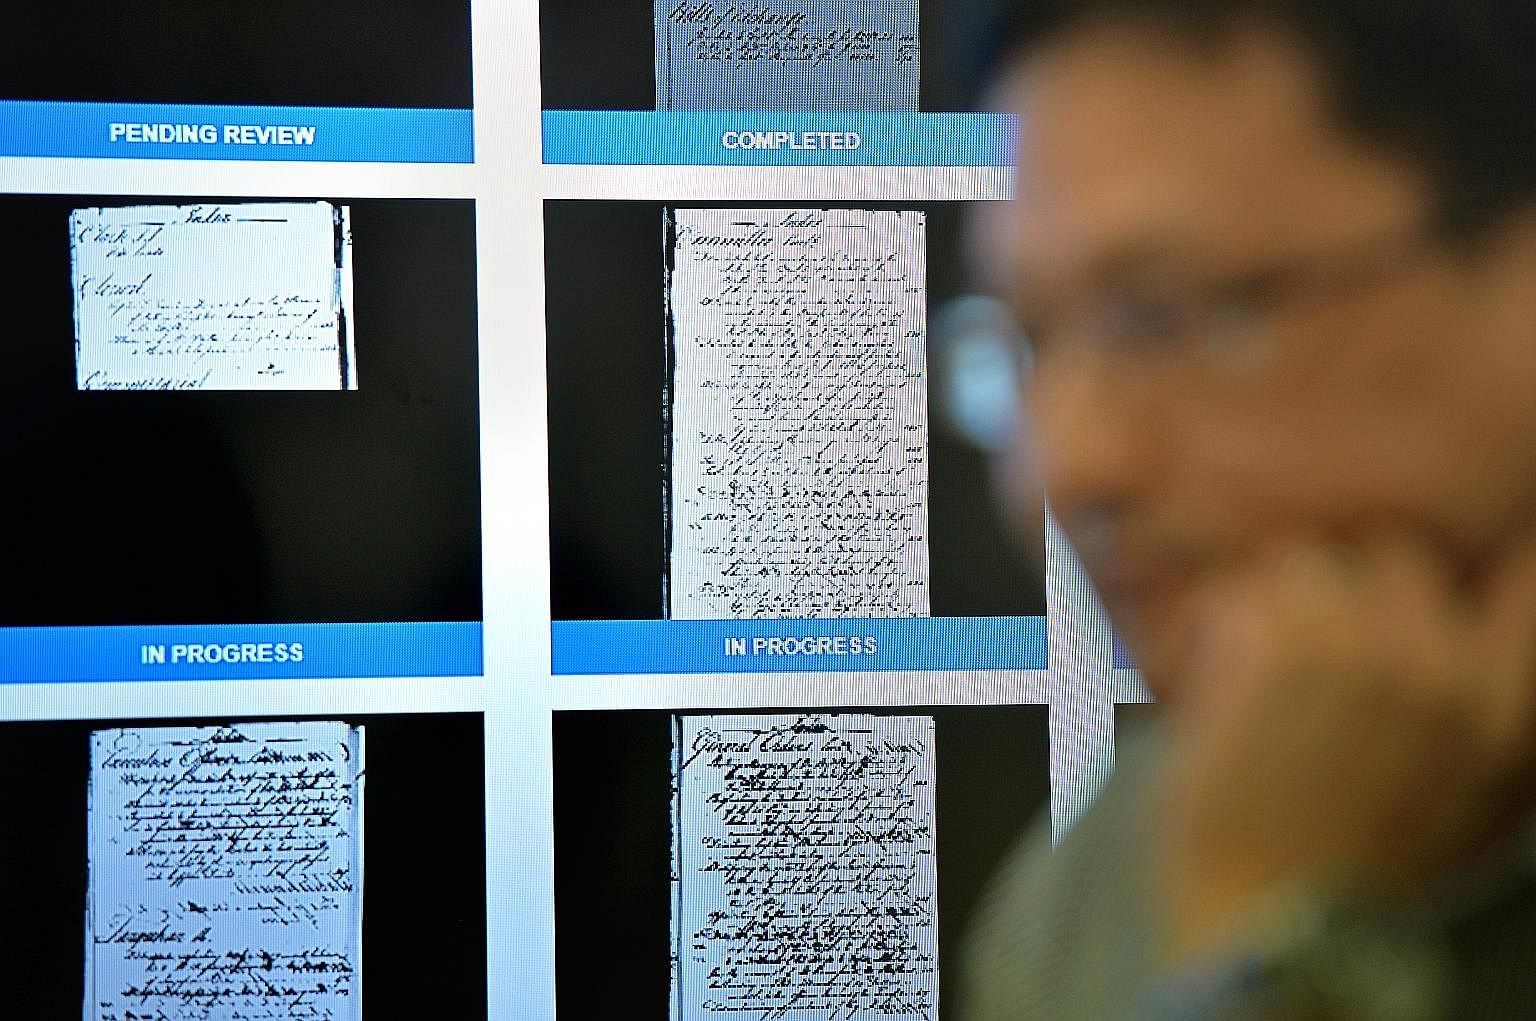 An online portal launched by the National Archives of Singapore allowing the public to pool their knowledge and increase the efforts to index more of the city-state's history. The Ministry of Law has proposed revisions to the Copyright Act, including